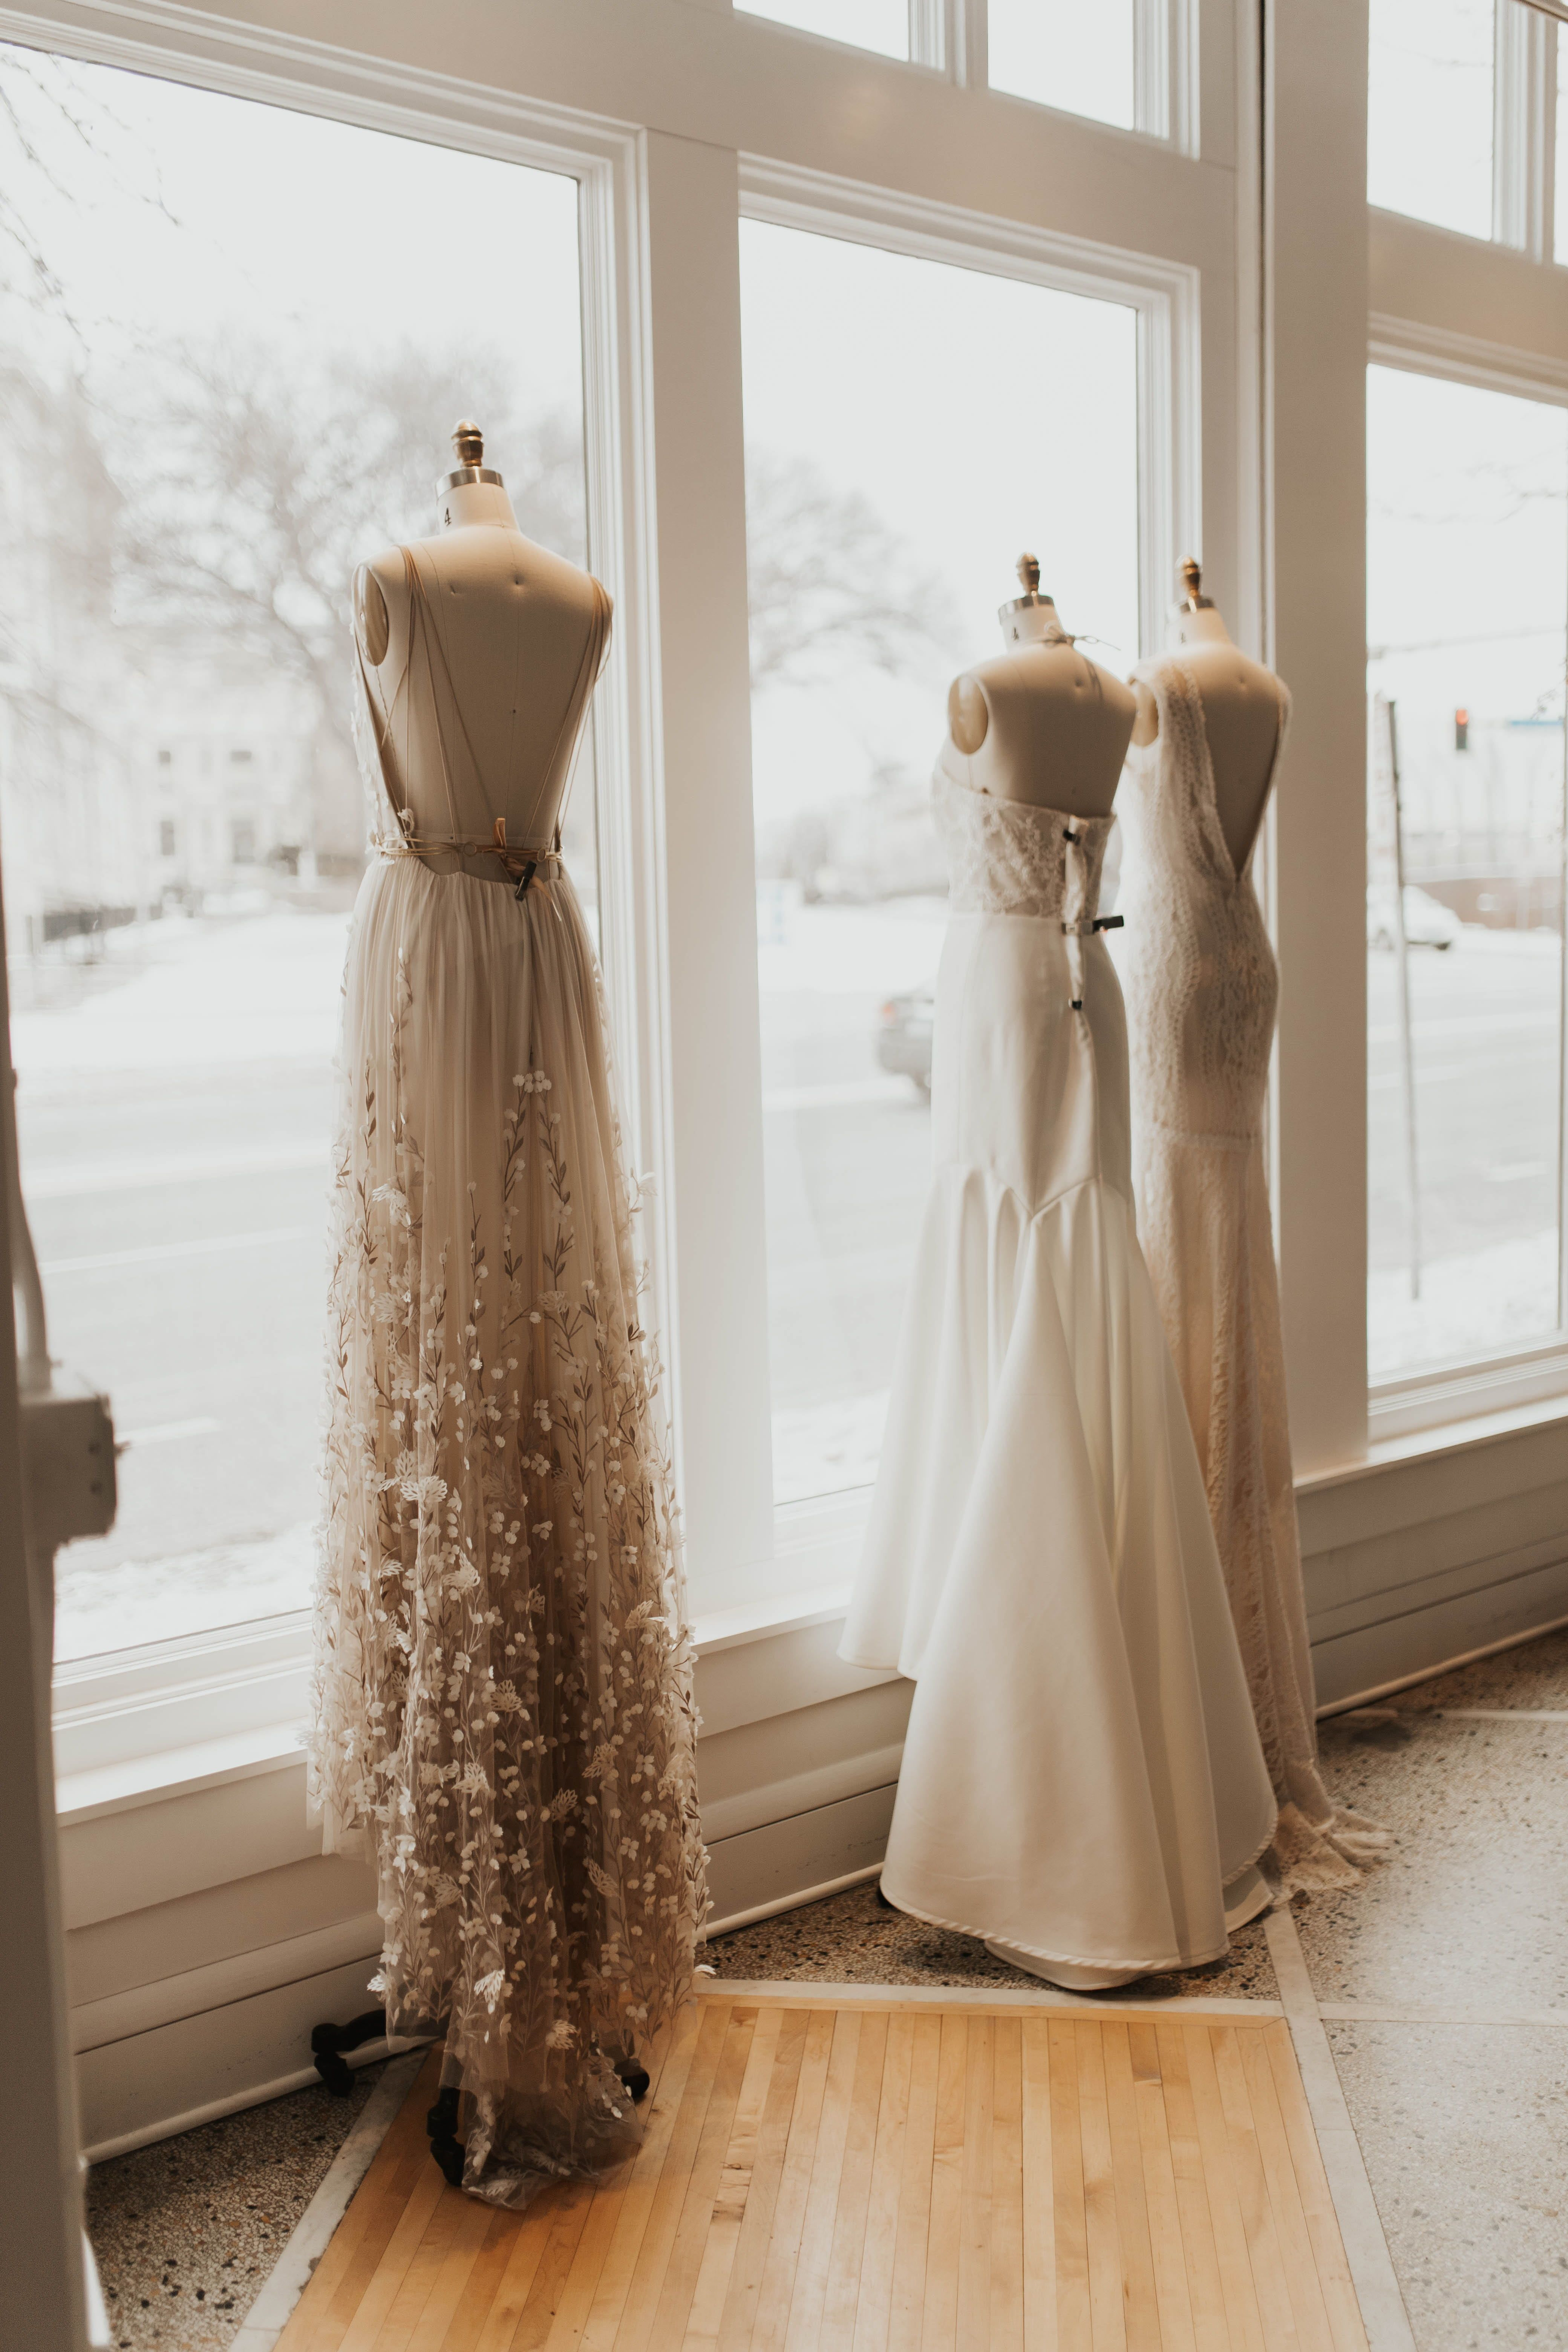 664482597dab7 TAKE A SNEAK PEEK INTO AN APPOINTMENT AT A&BE BRIDAL SHOP IN MINNEAPOLIS,  MINNESOTA. Modern Bride, Romantic Bride, Indie Bride, Bohemian Bride, ...